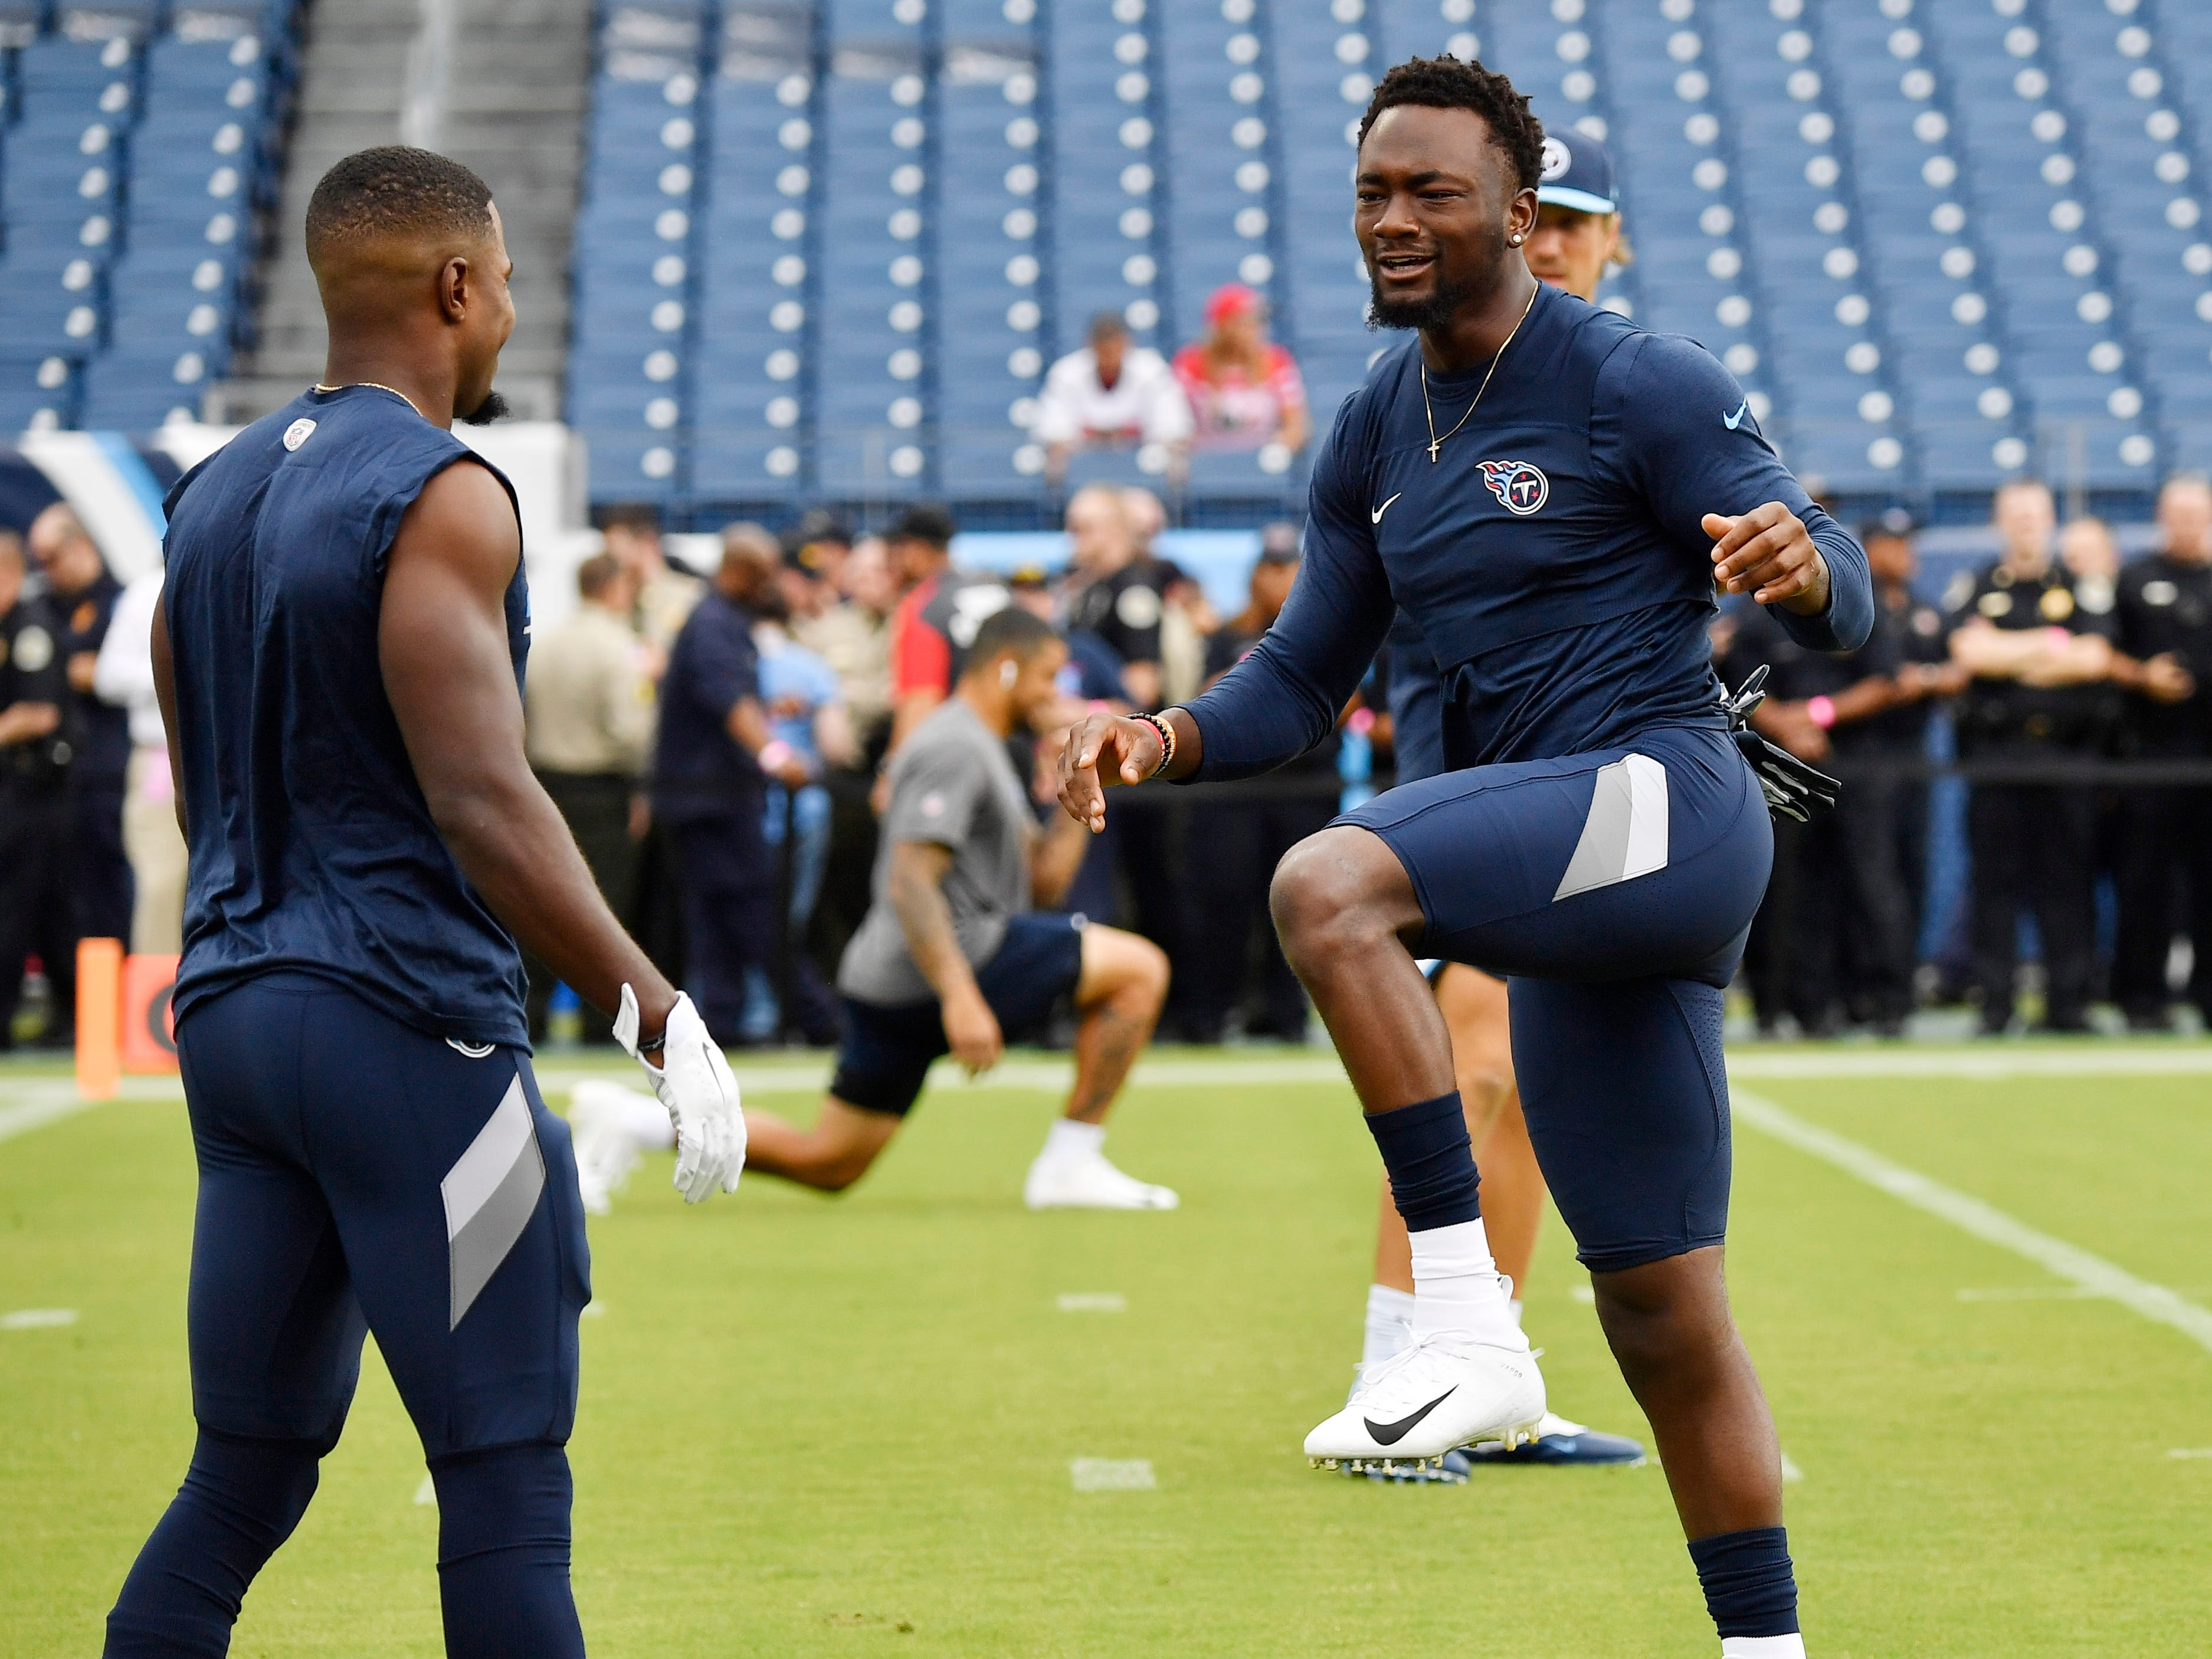 Titans wide receiver Corey Davis (84) warms up before the game against the Texans at Nissan Stadium Sunday, Sept. 16, 2018, in Nashville, Tenn.